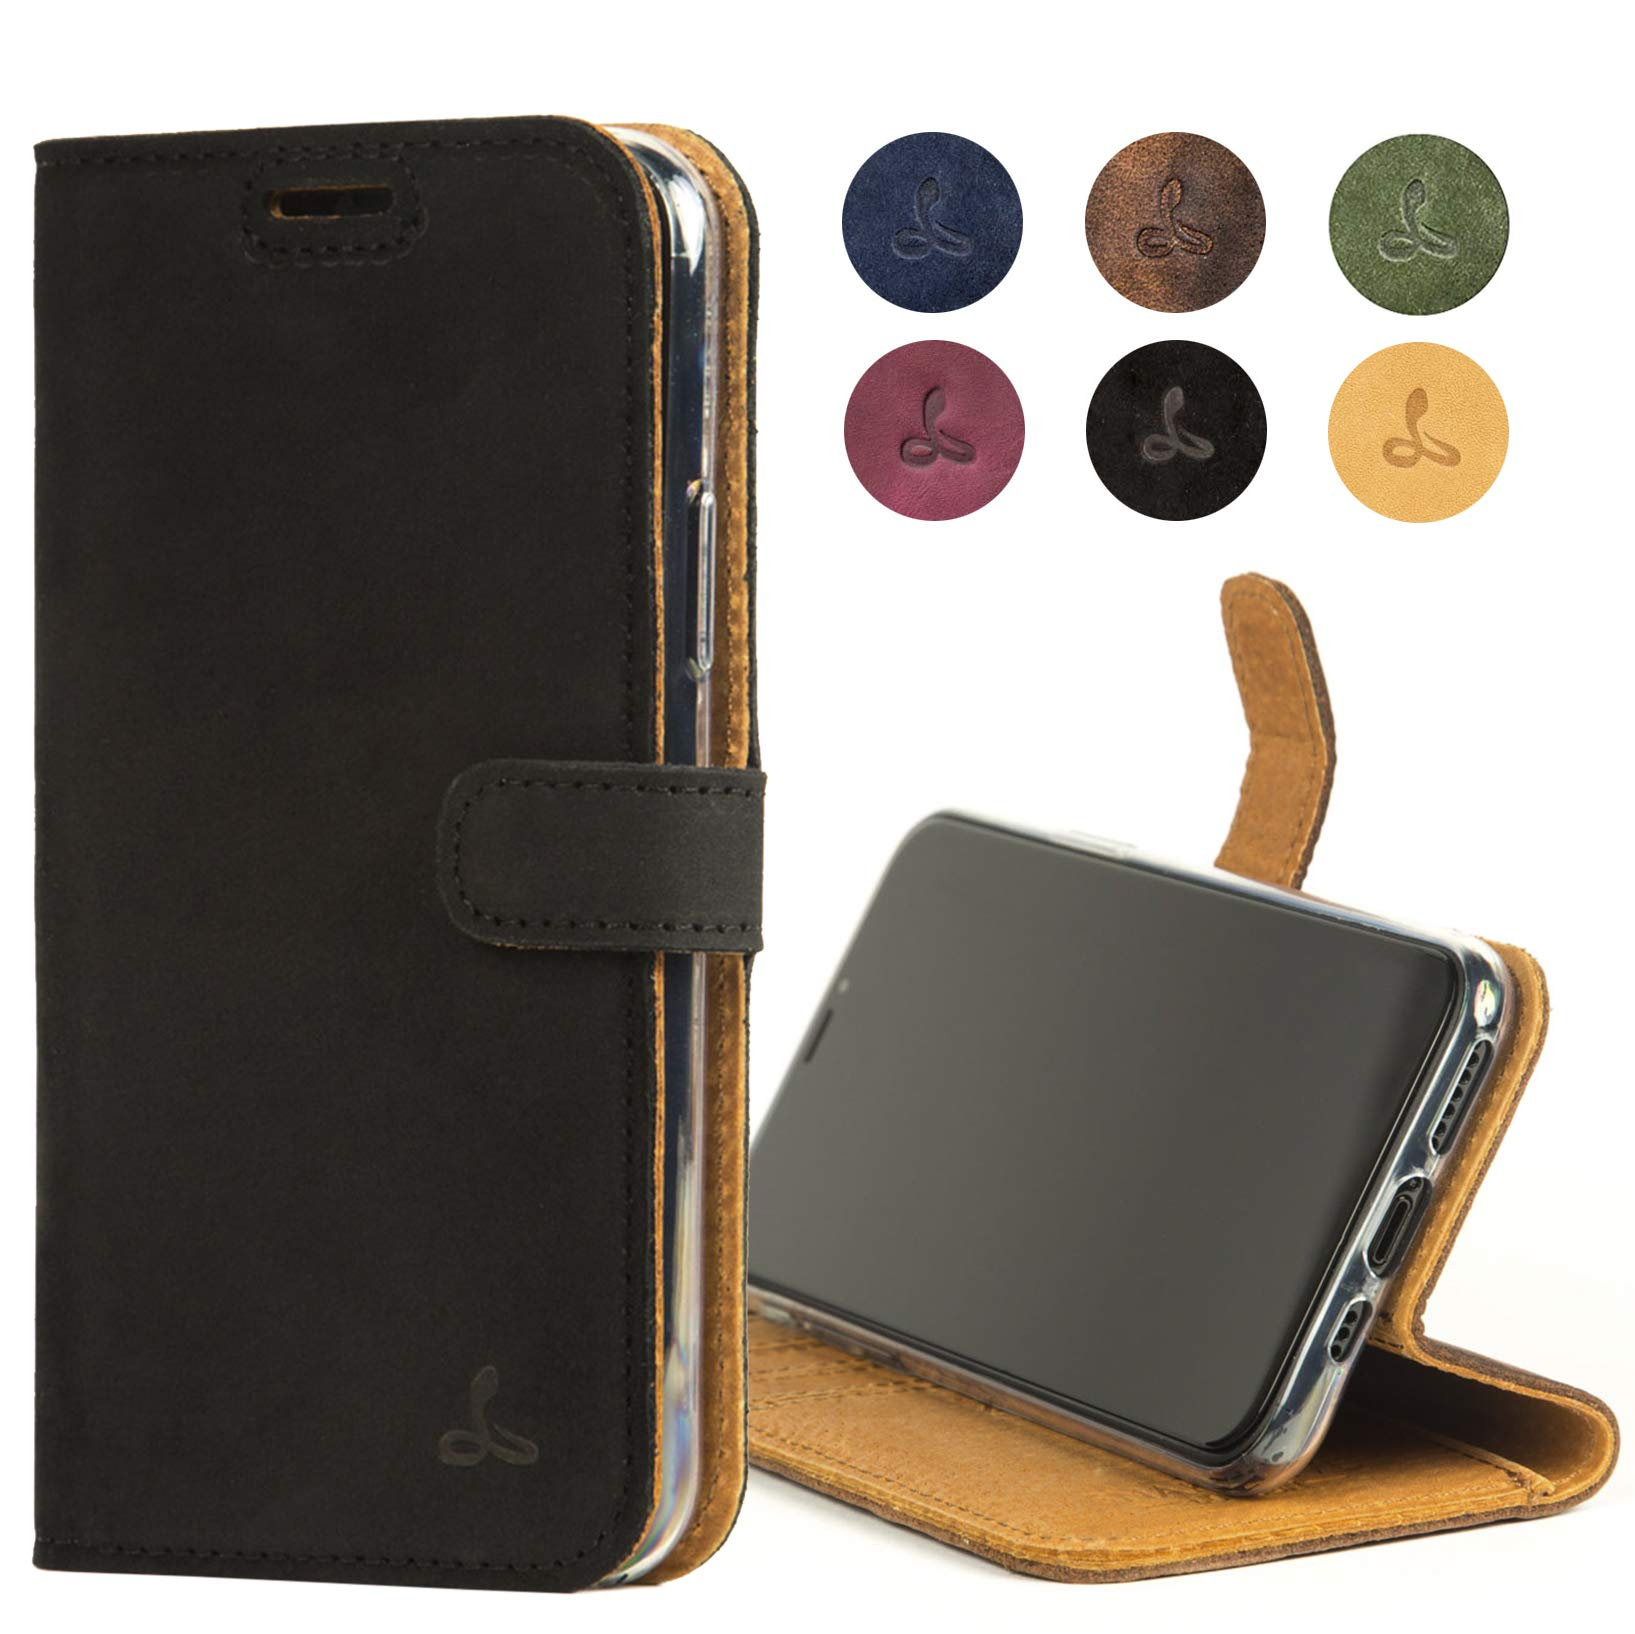 iPhone Leather Genuine Viewing Handmade